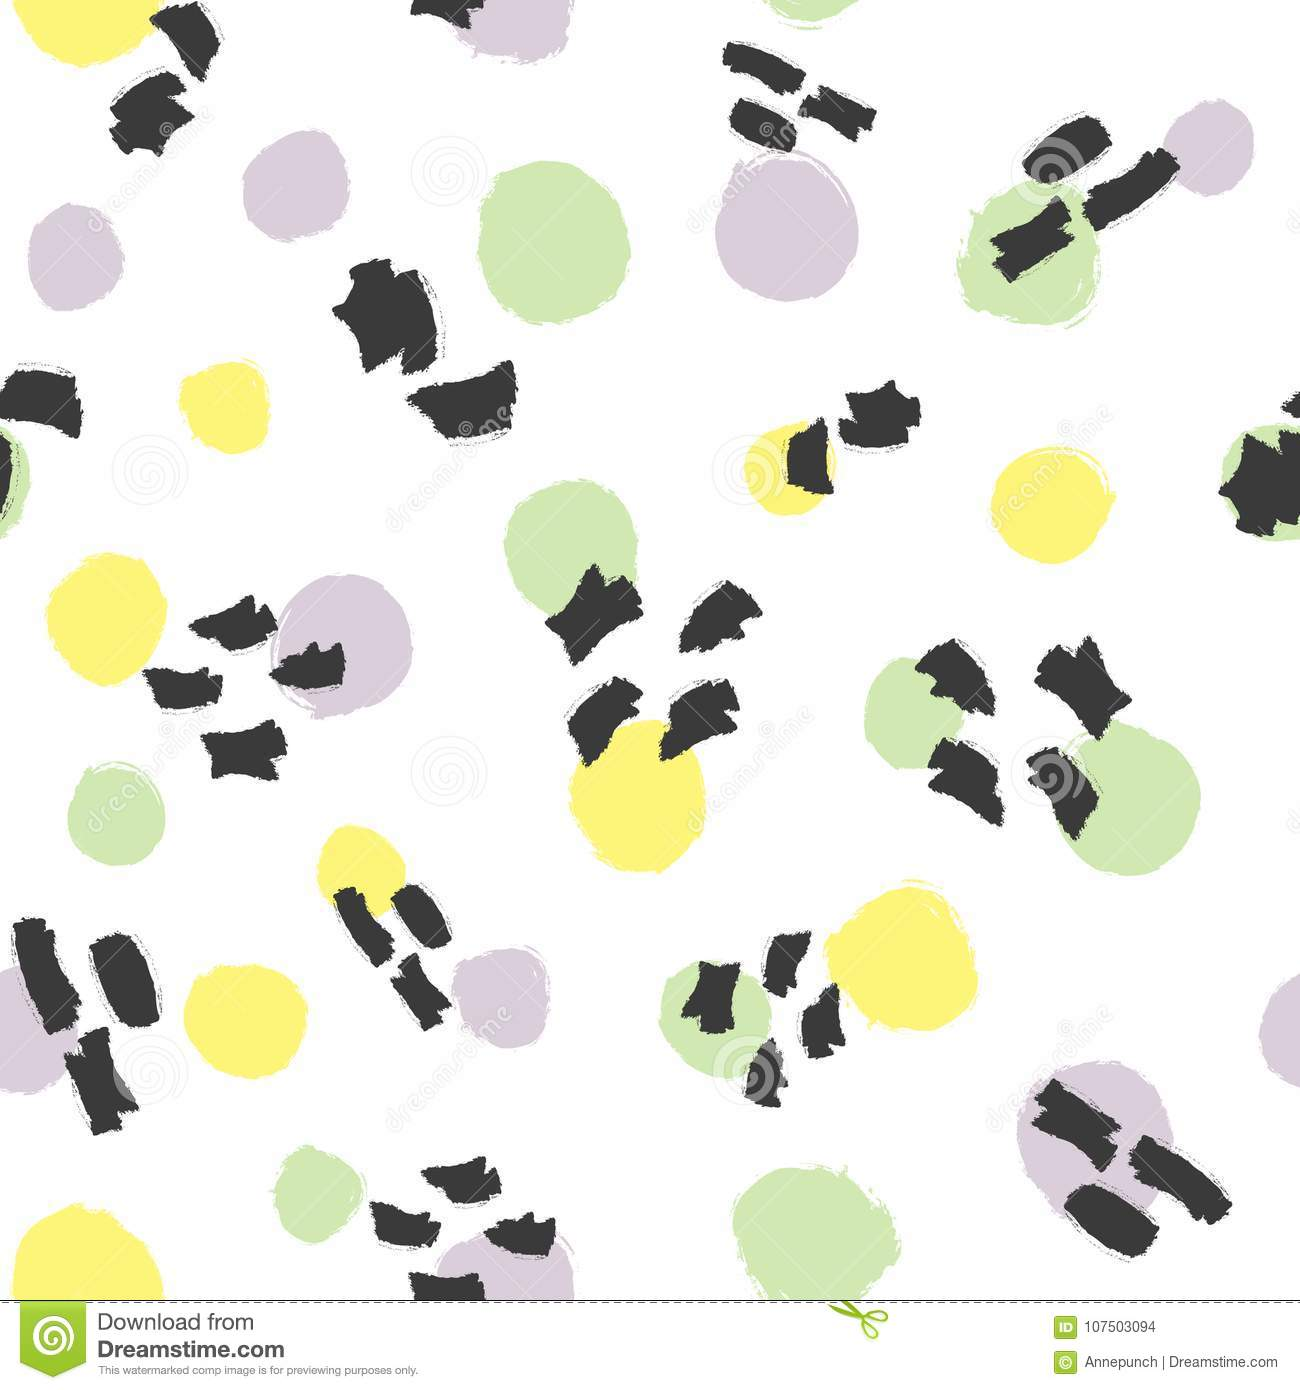 Fashionable seamless pattern with round spots and watercolor brush strokes.